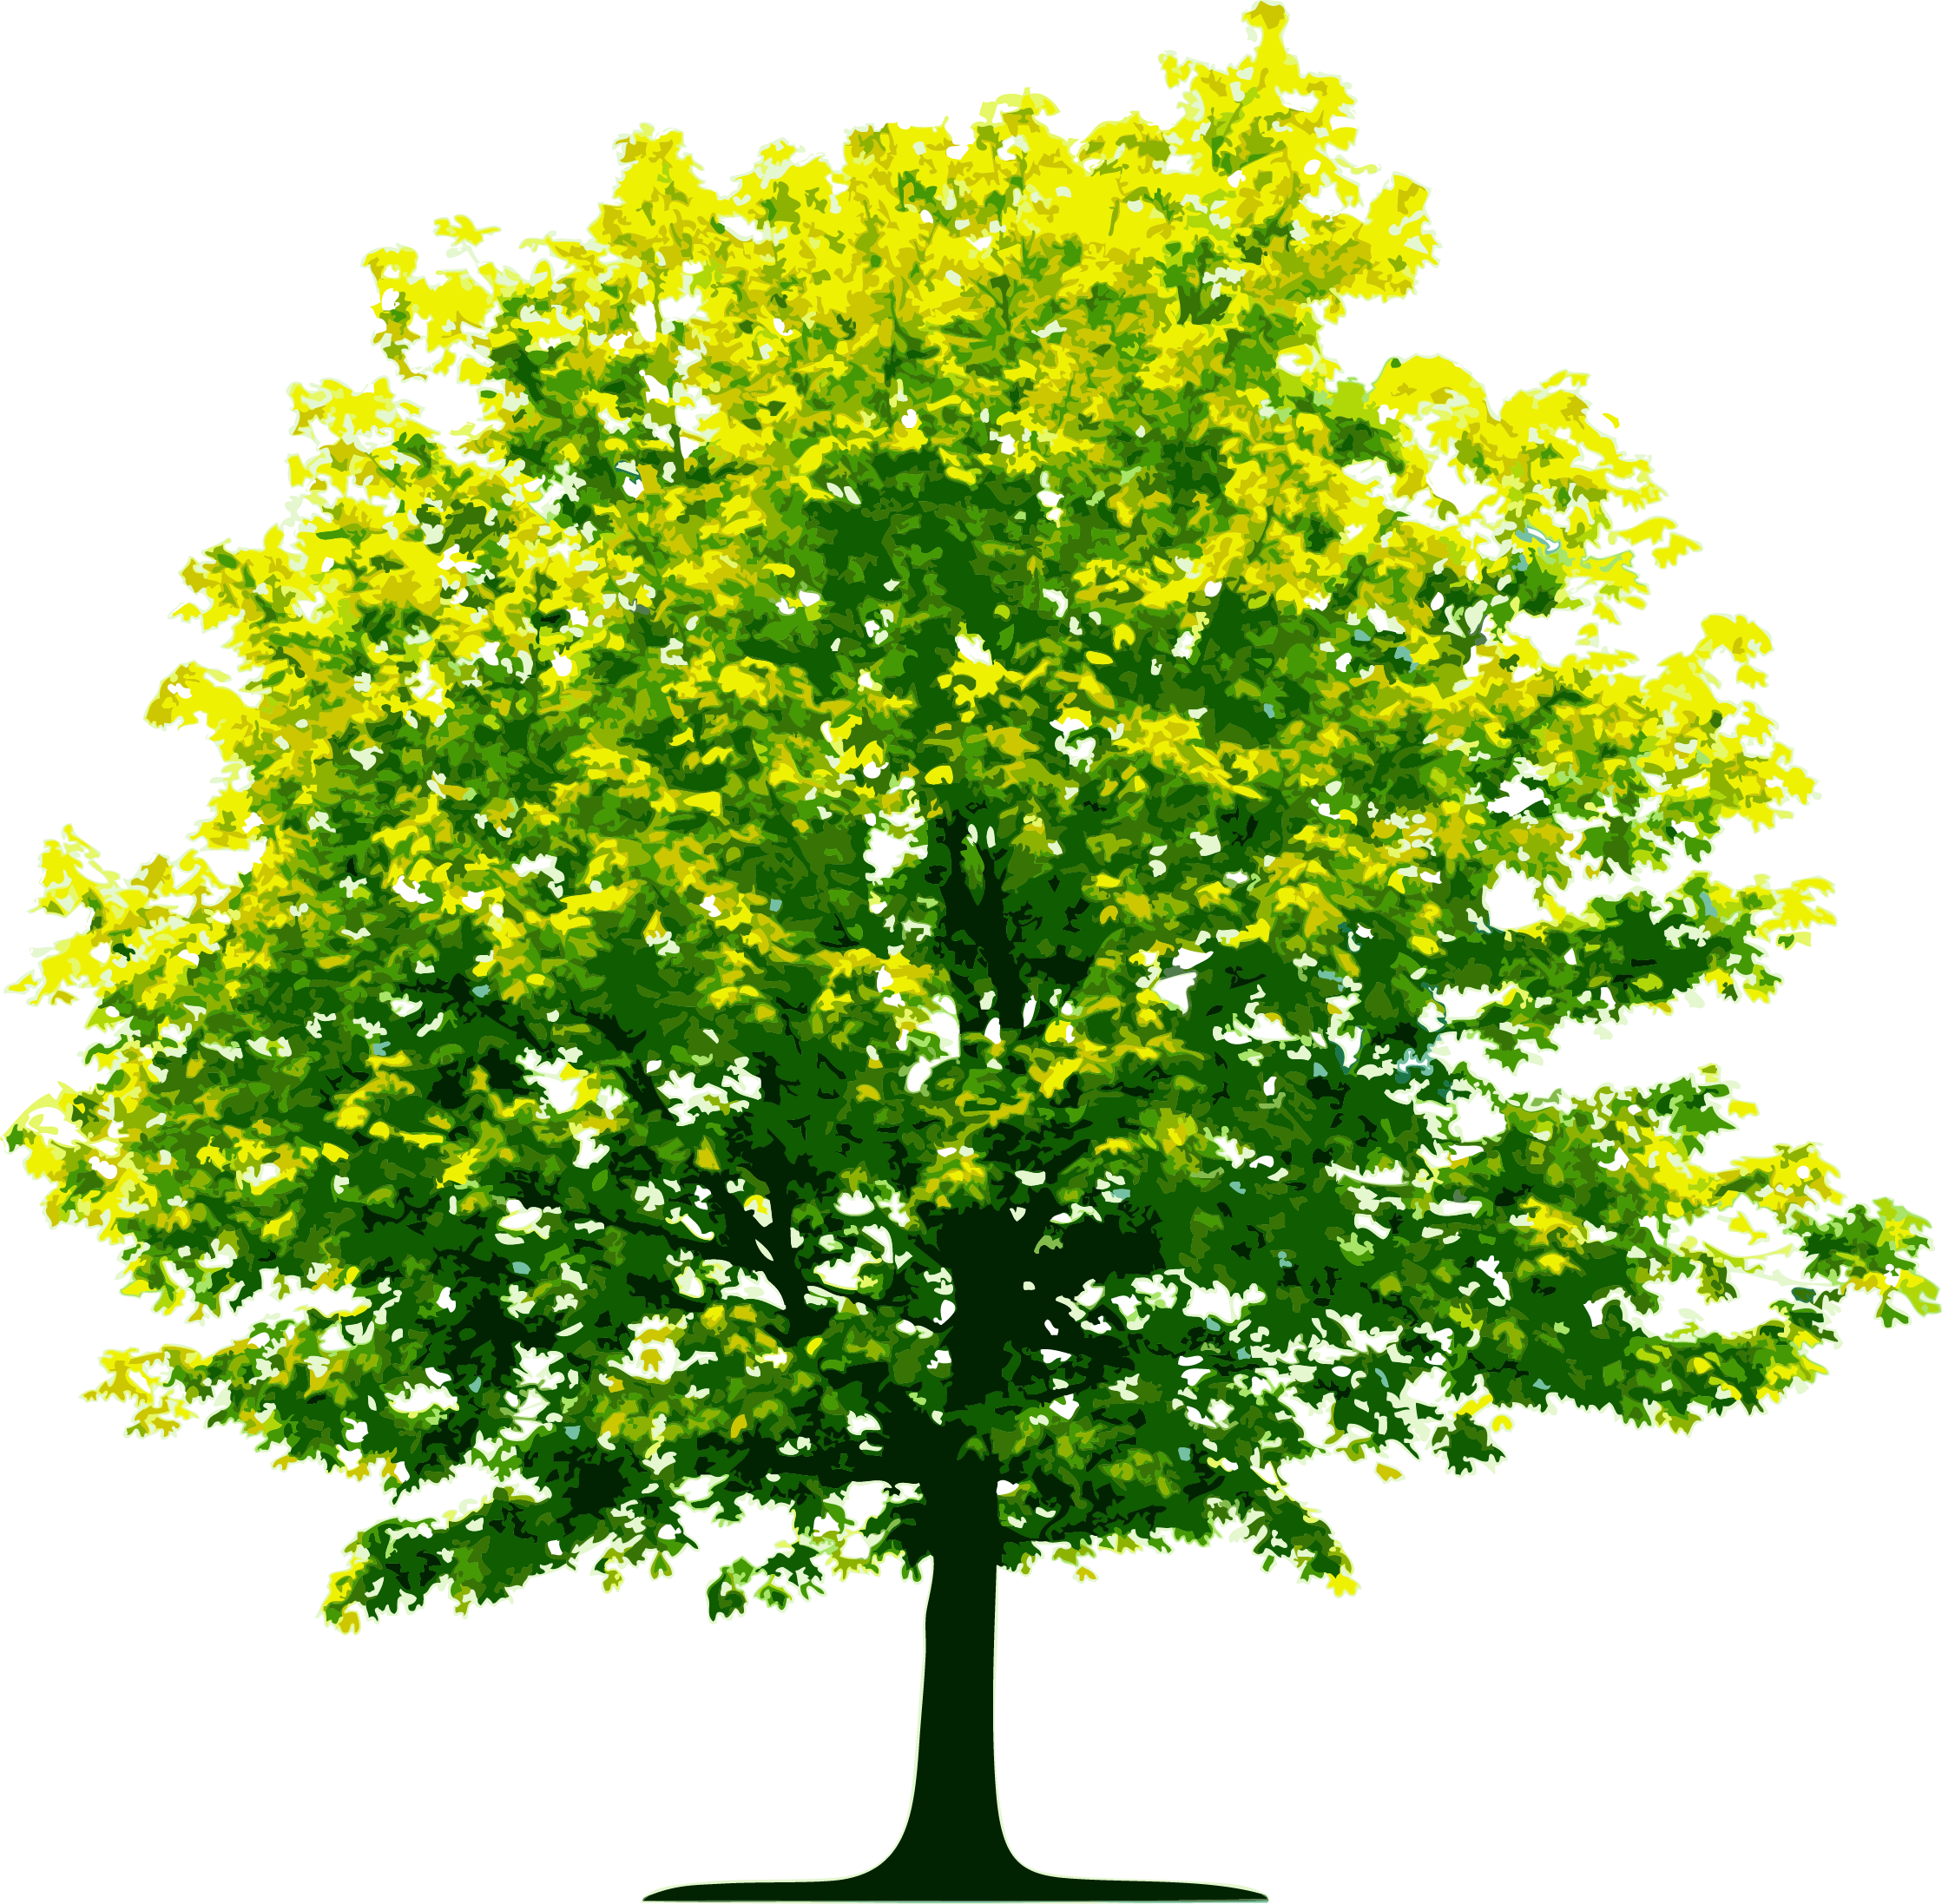 Nature Tree Png Image 6408